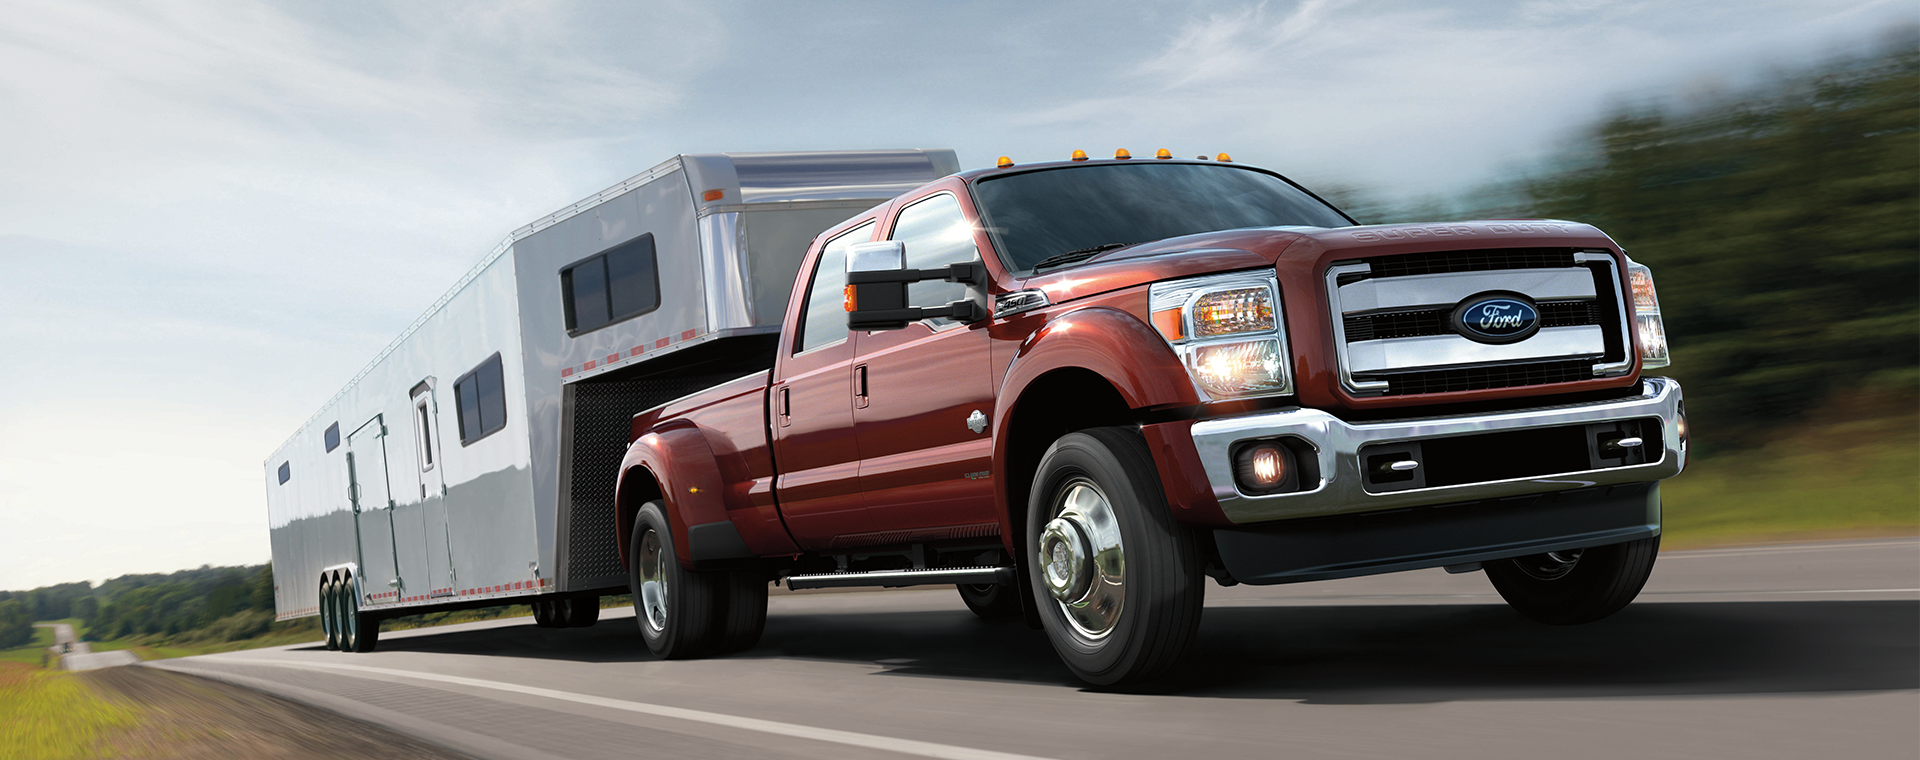 New F-350 inventory at Quirk Ford